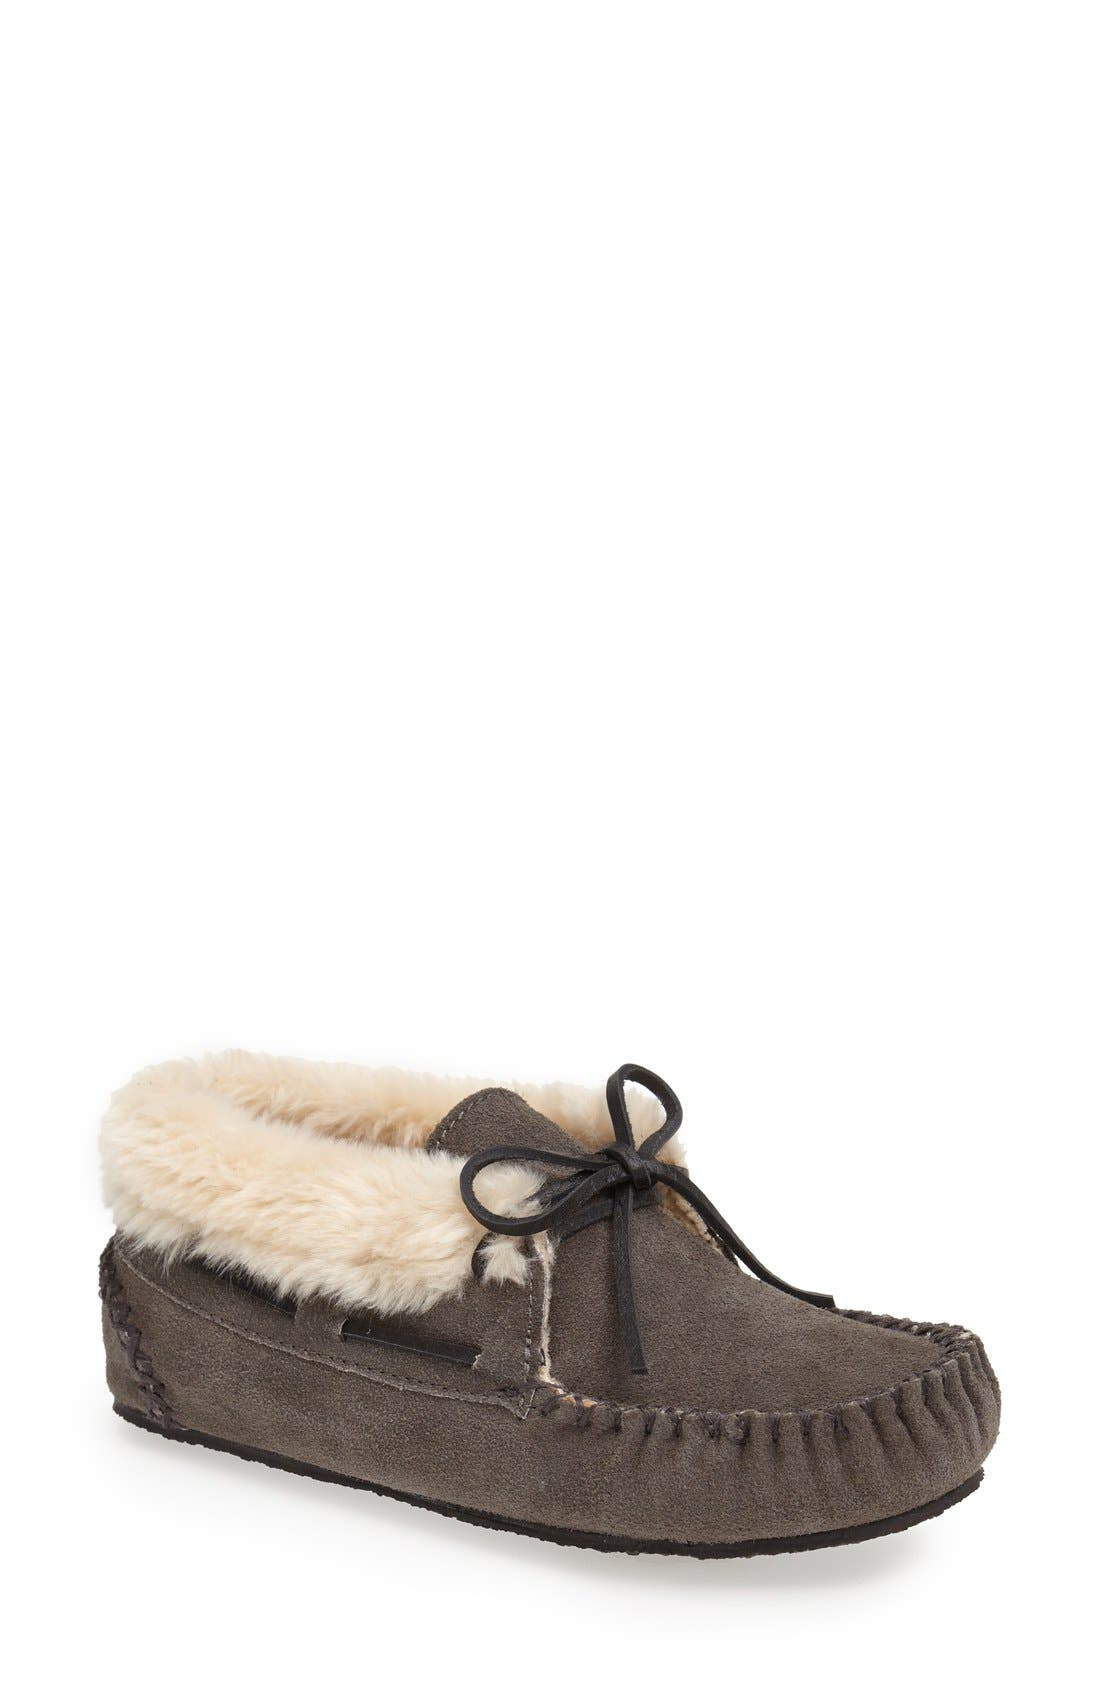 Alternate Image 1 Selected - Minnetonka 'Chrissy' Slipper Bootie (Women)